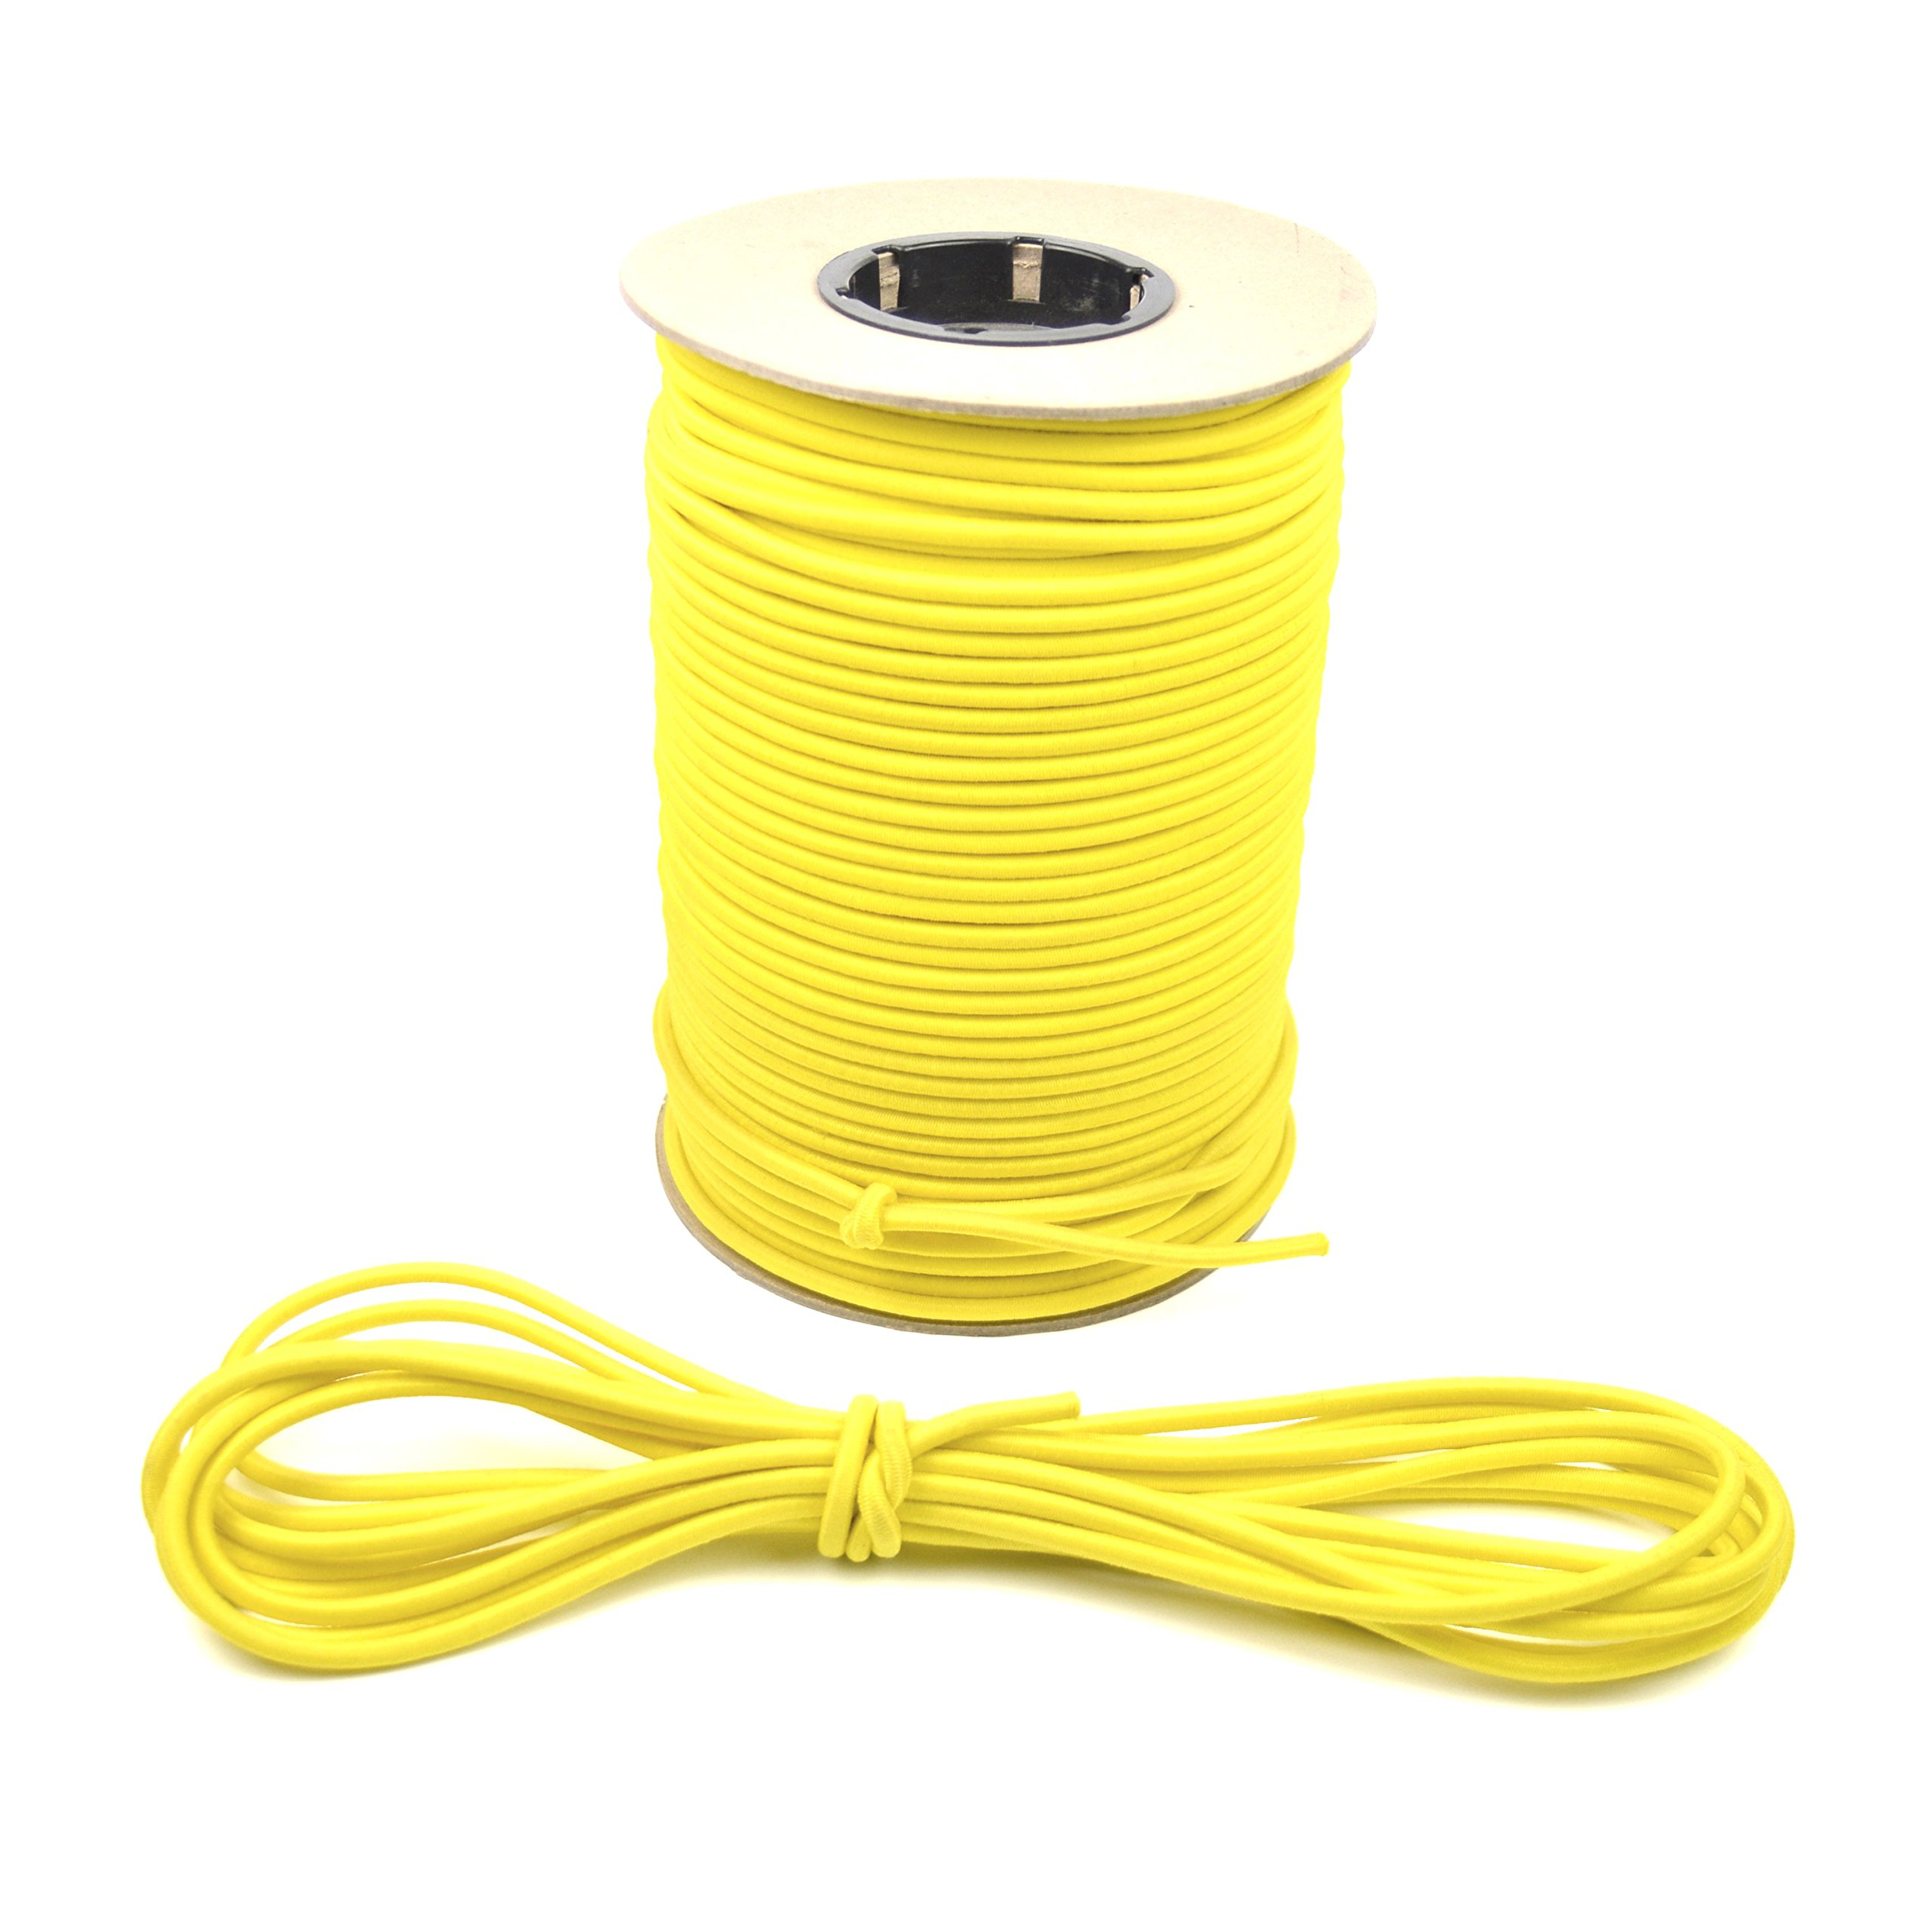 Marine Masters 1/4'' Yellow Bungee / Shock Cord Crafting Stretch String, Tie Down Trailer Strap (Sold by the foot)